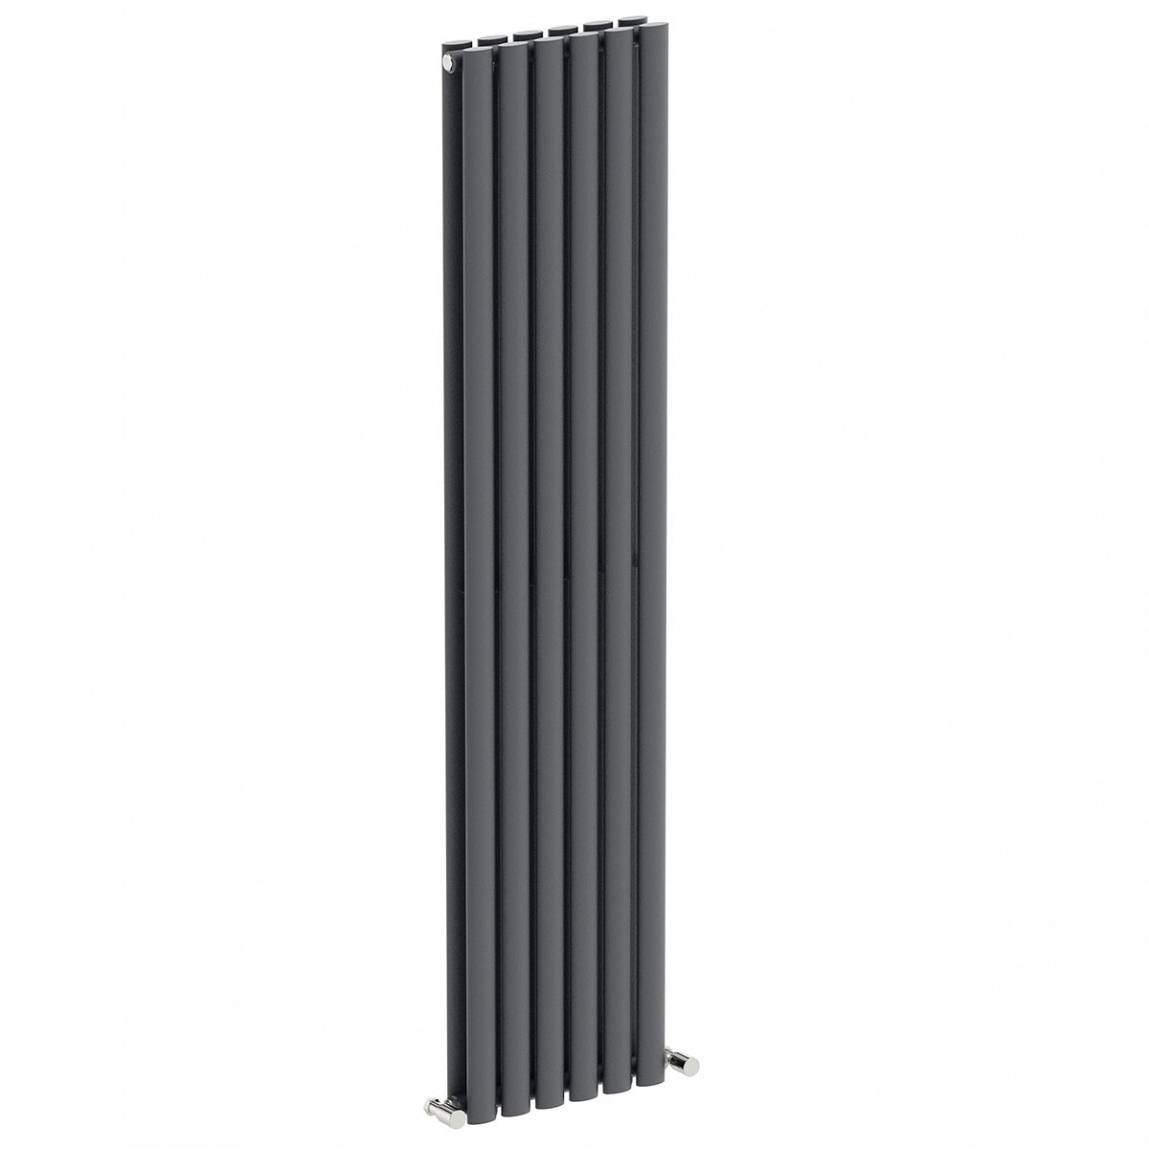 Image of Lava Double Radiator 1600 x 360 Special Offer